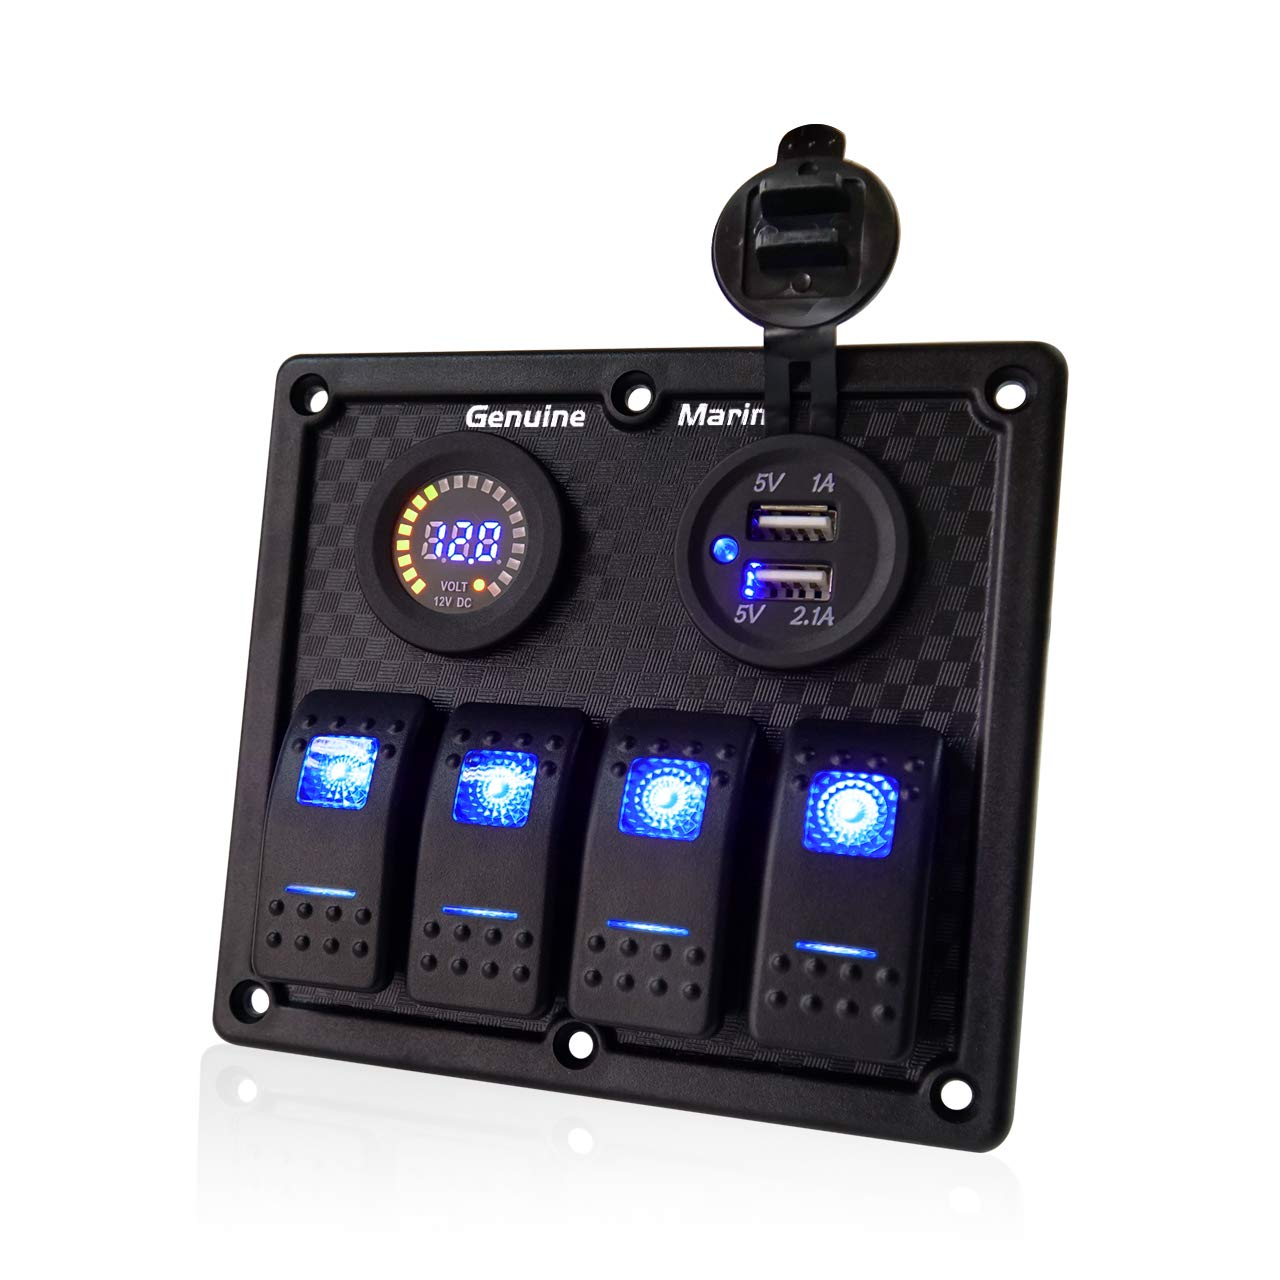 4 Gang Contura Switch Waterproof Panel - Digital Voltmeter Display with Blue LED, 12V Circuit Breaker Universal Control Switcher with 5V 3.1A USB Mount DC Charger Socket, for RV Boats Cars Motor-House by Genuine Marine